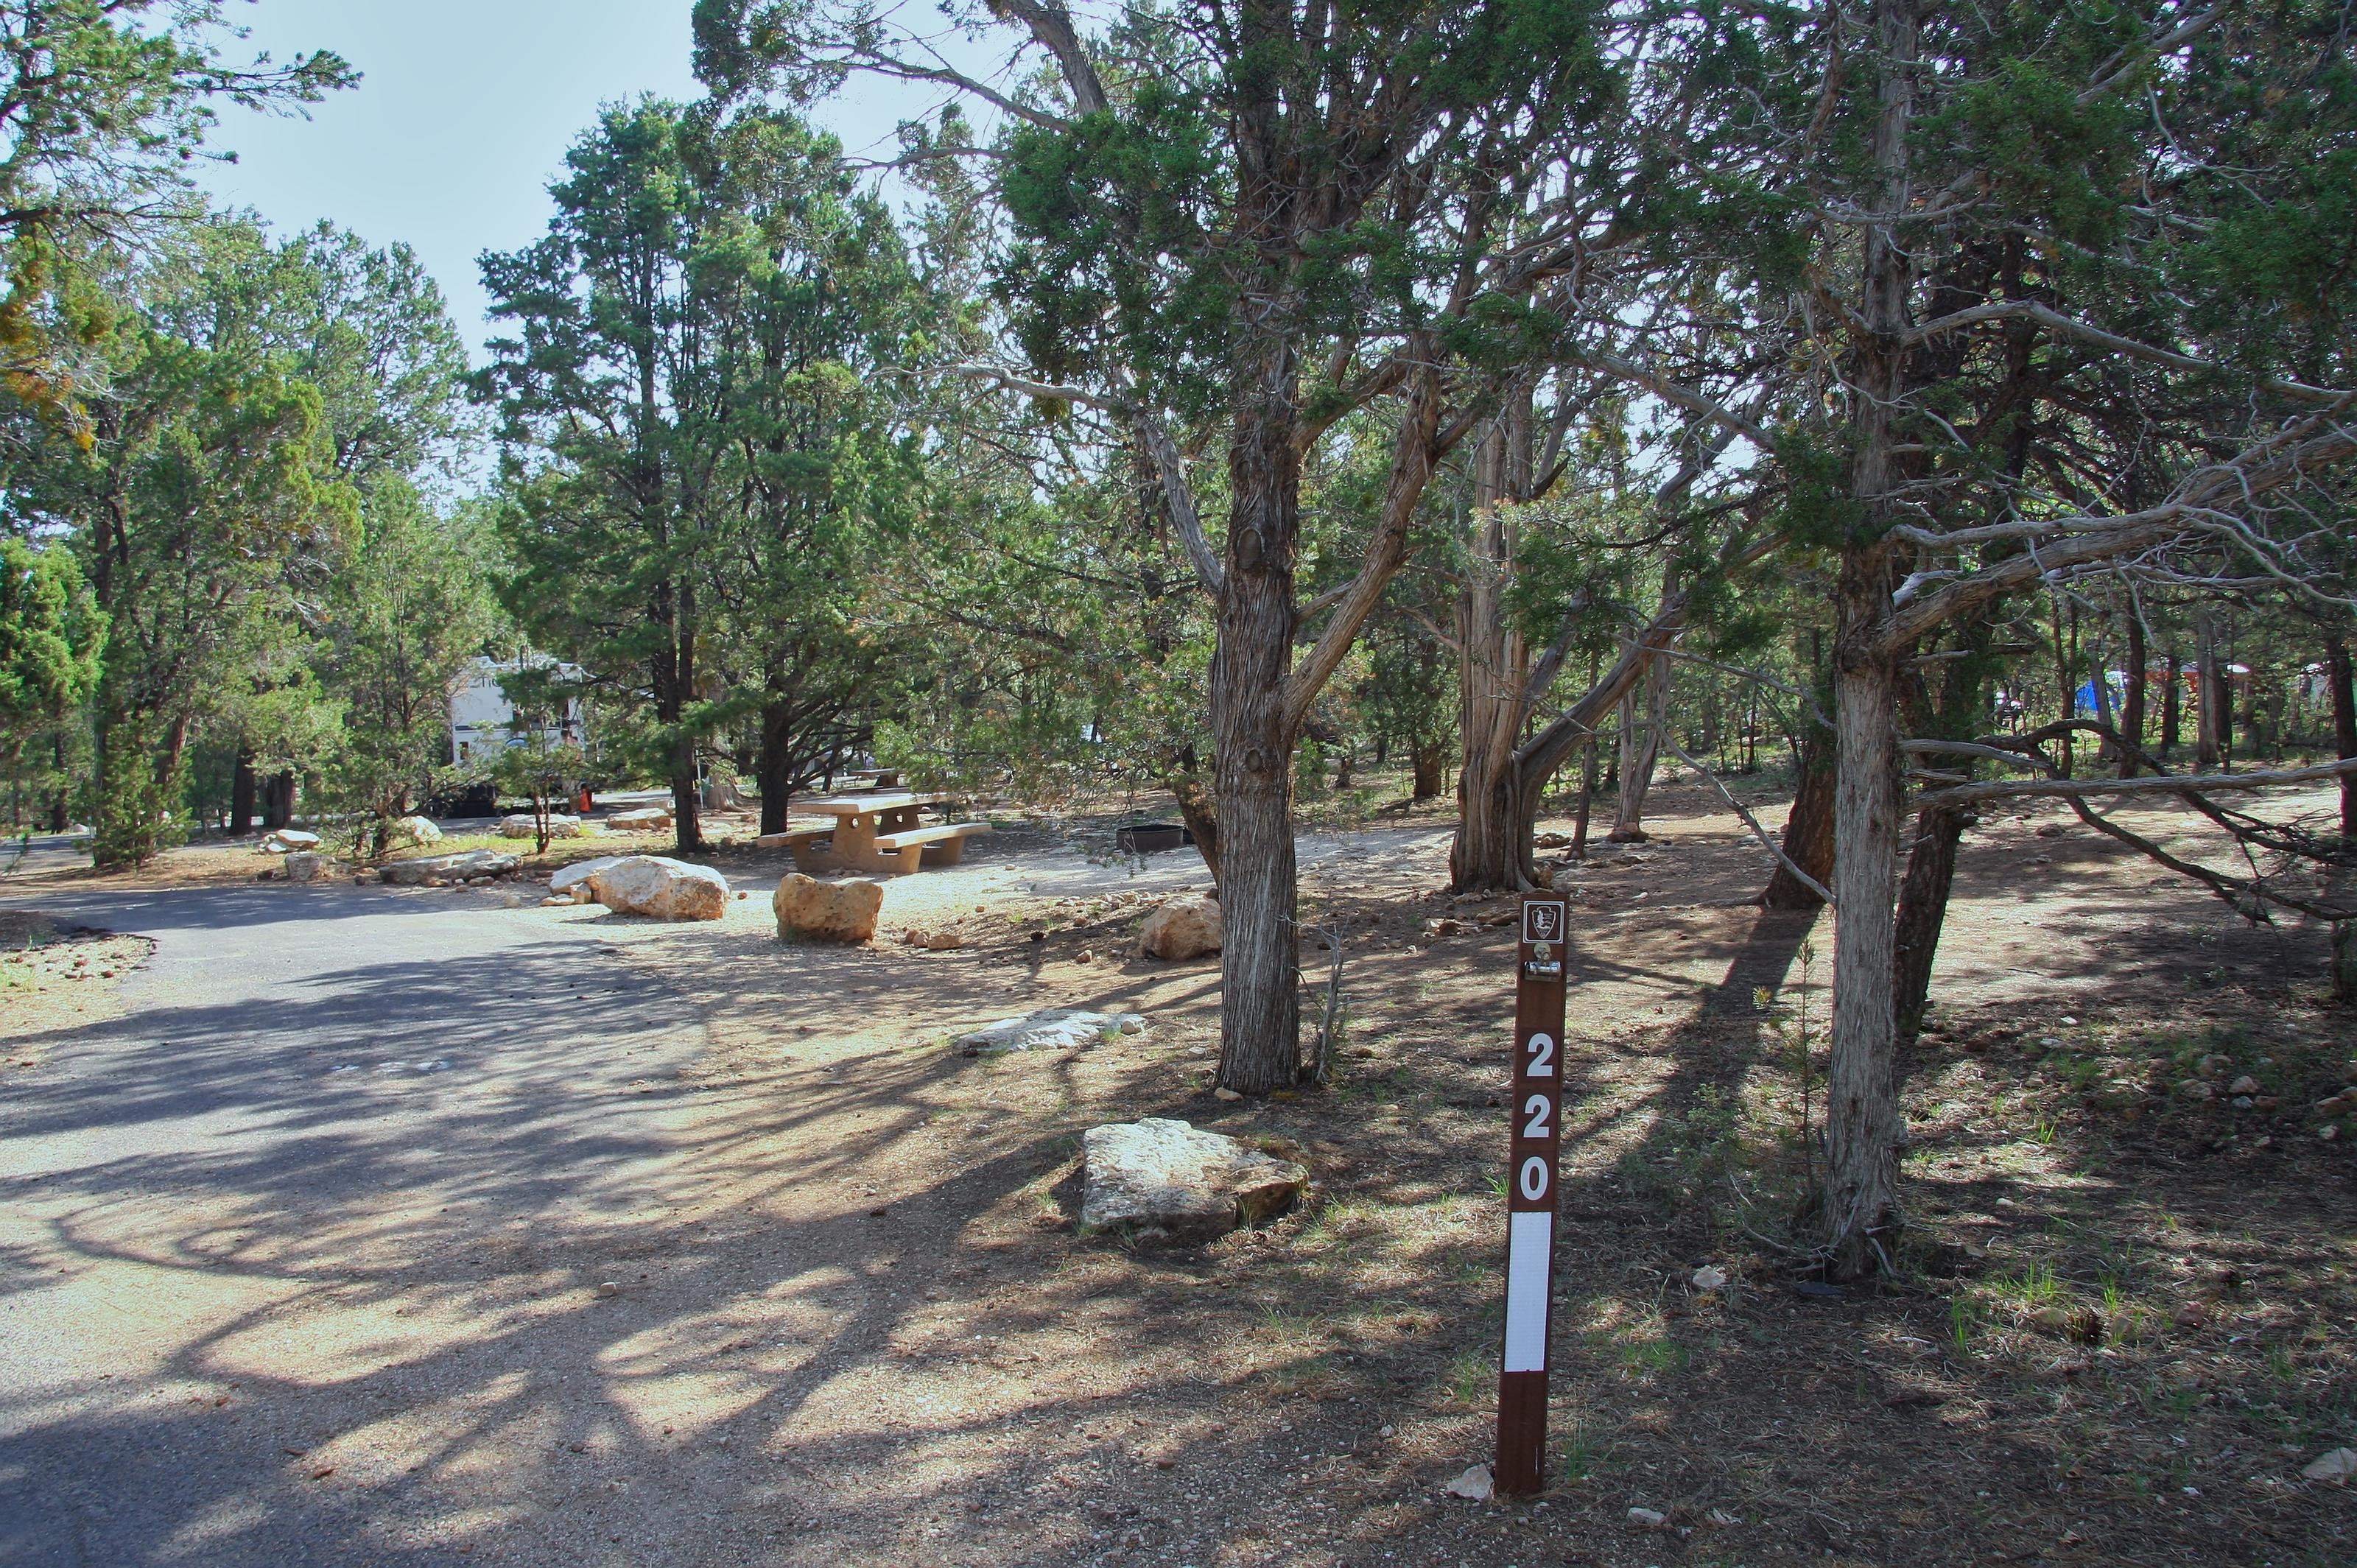 Picnic table, fire pit, and parking spot, Mather CampgroundPicnic table, fire pit, and parking spot for Oak Loop 220, Mather Campground